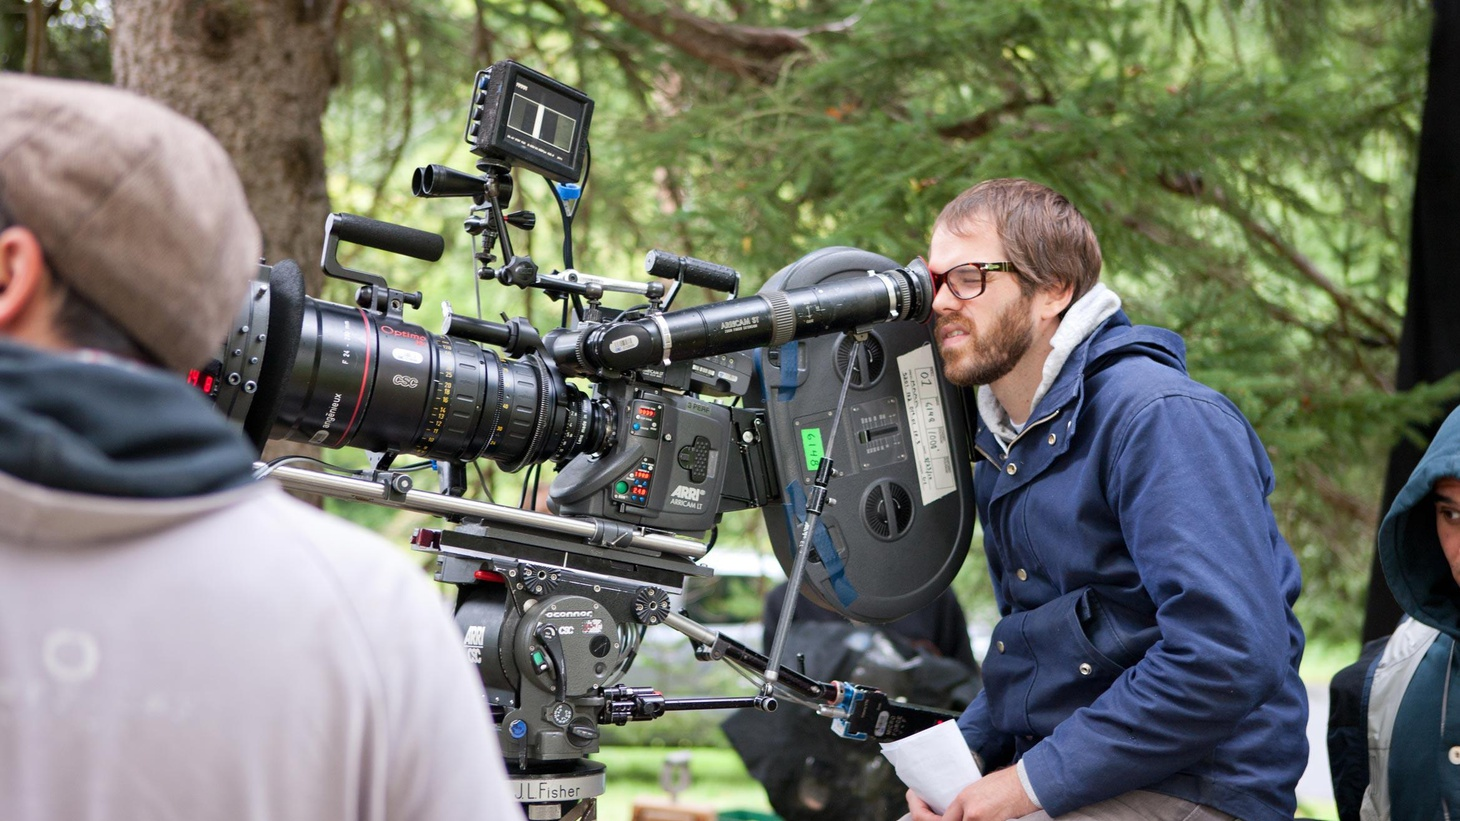 Sean Durkin talks about growing up in Hampstead Heath, what movies really scare him, and how he came up with one of the most tongue-twisting movie titles of the year...